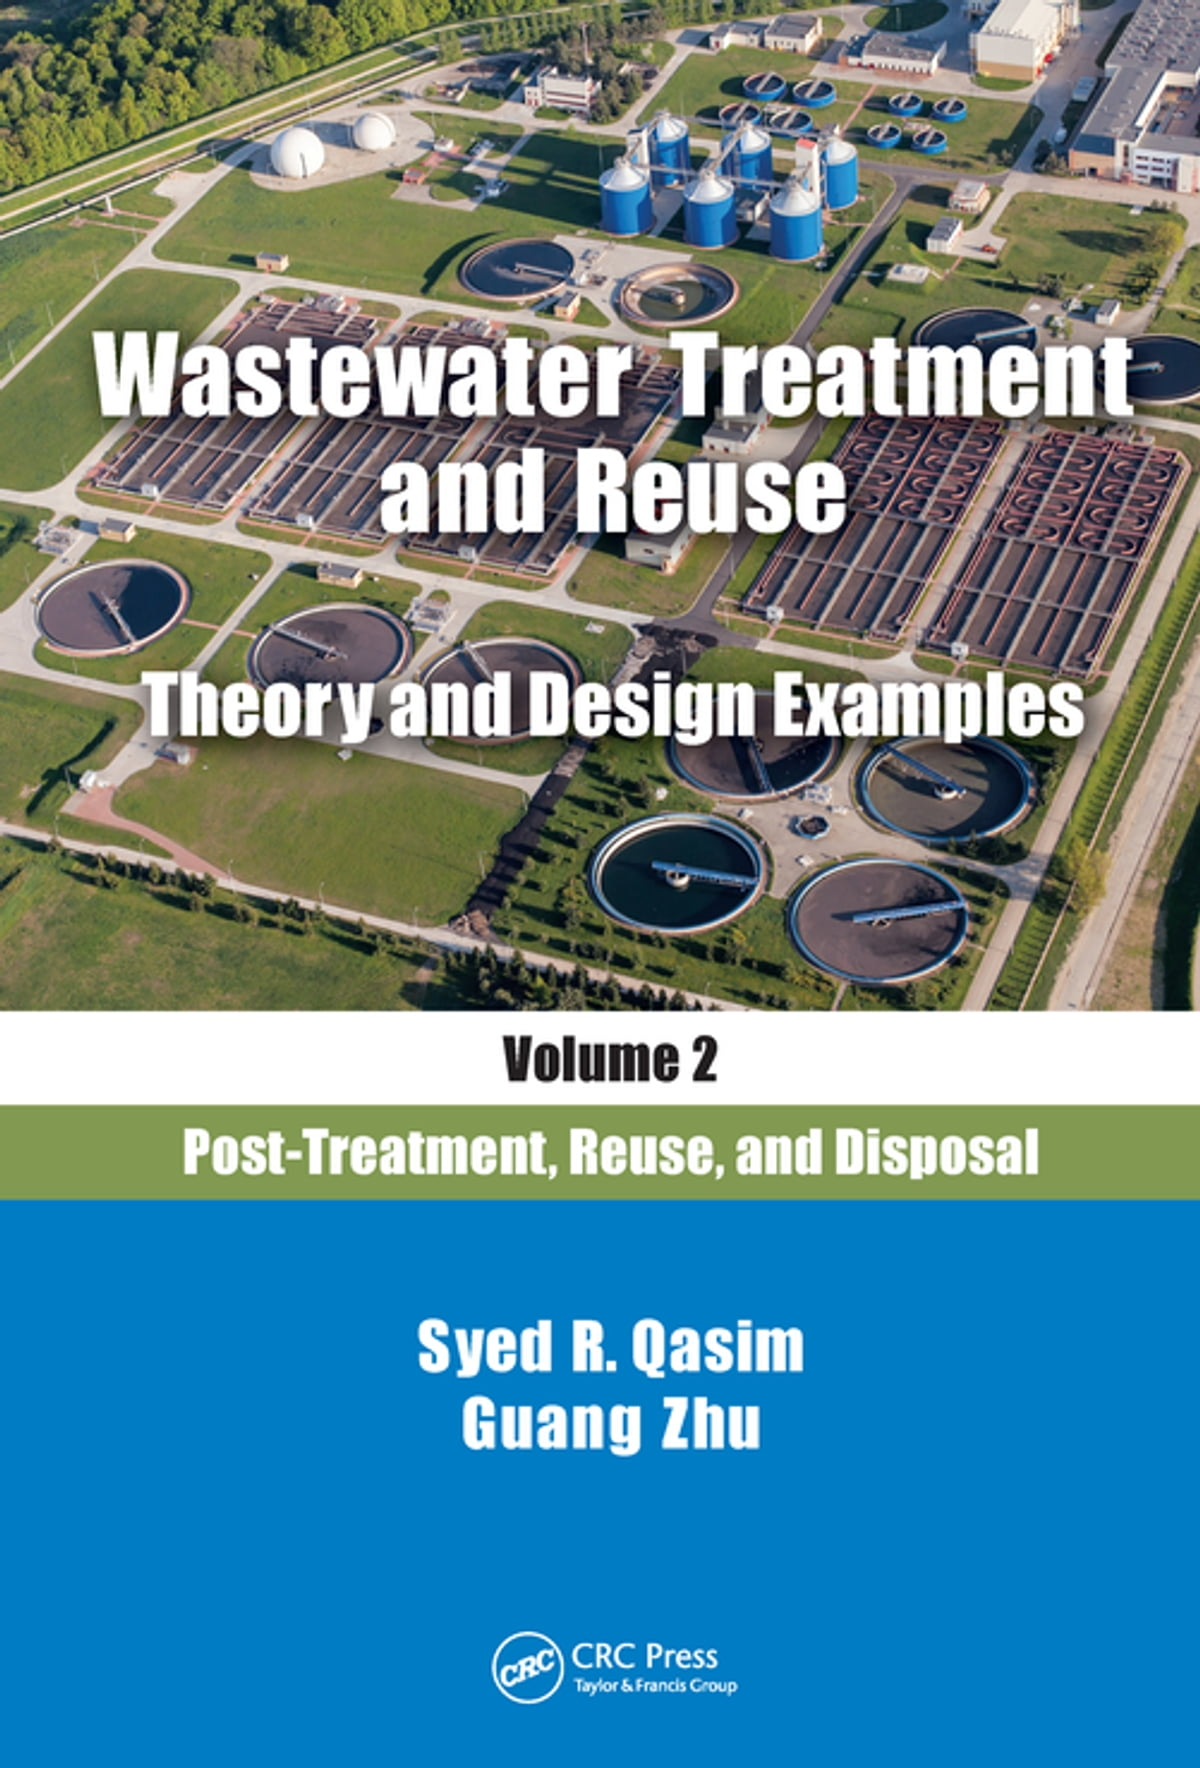 wastewater treatment and reuse theory and design examples volume 2